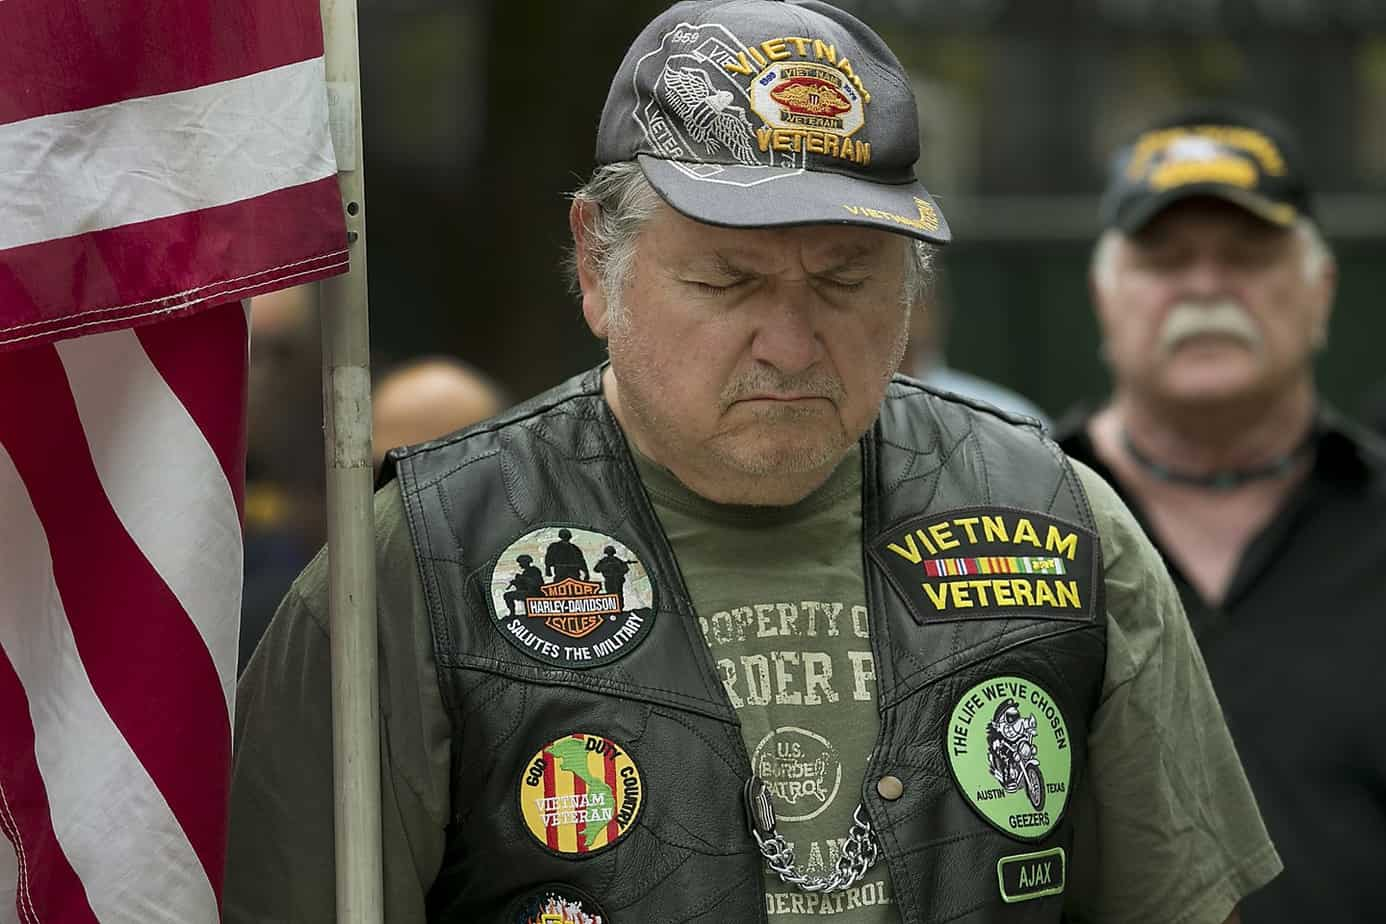 Veterans Face Larger Challenges Concerning Medical Marijuana Than Others